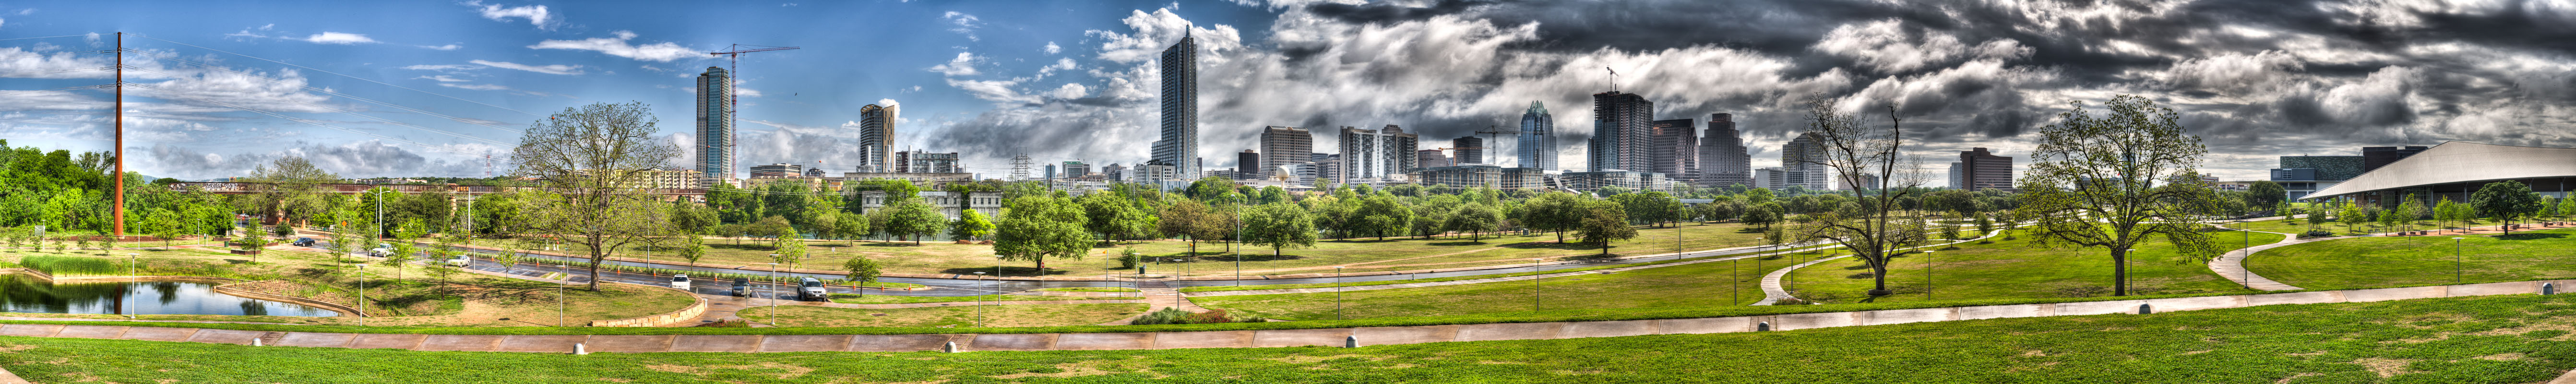 Downtown Austin Panorama Photo by TXAlex at SkyscraperPage Forums